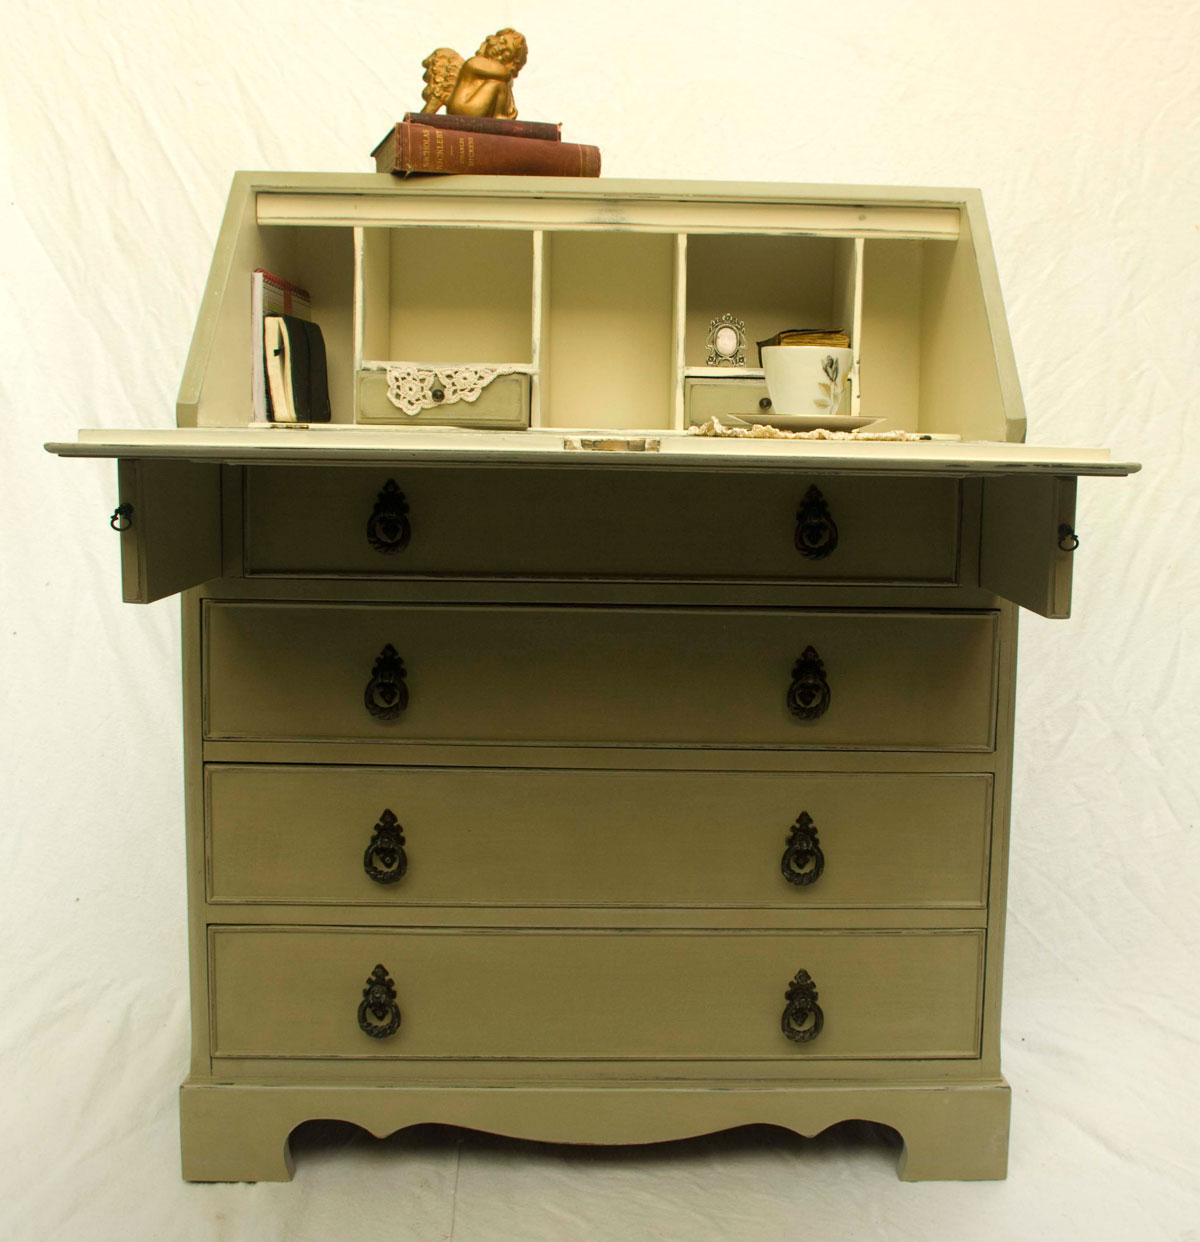 vintage shabby chic bureau 04 01 touch the wood. Black Bedroom Furniture Sets. Home Design Ideas